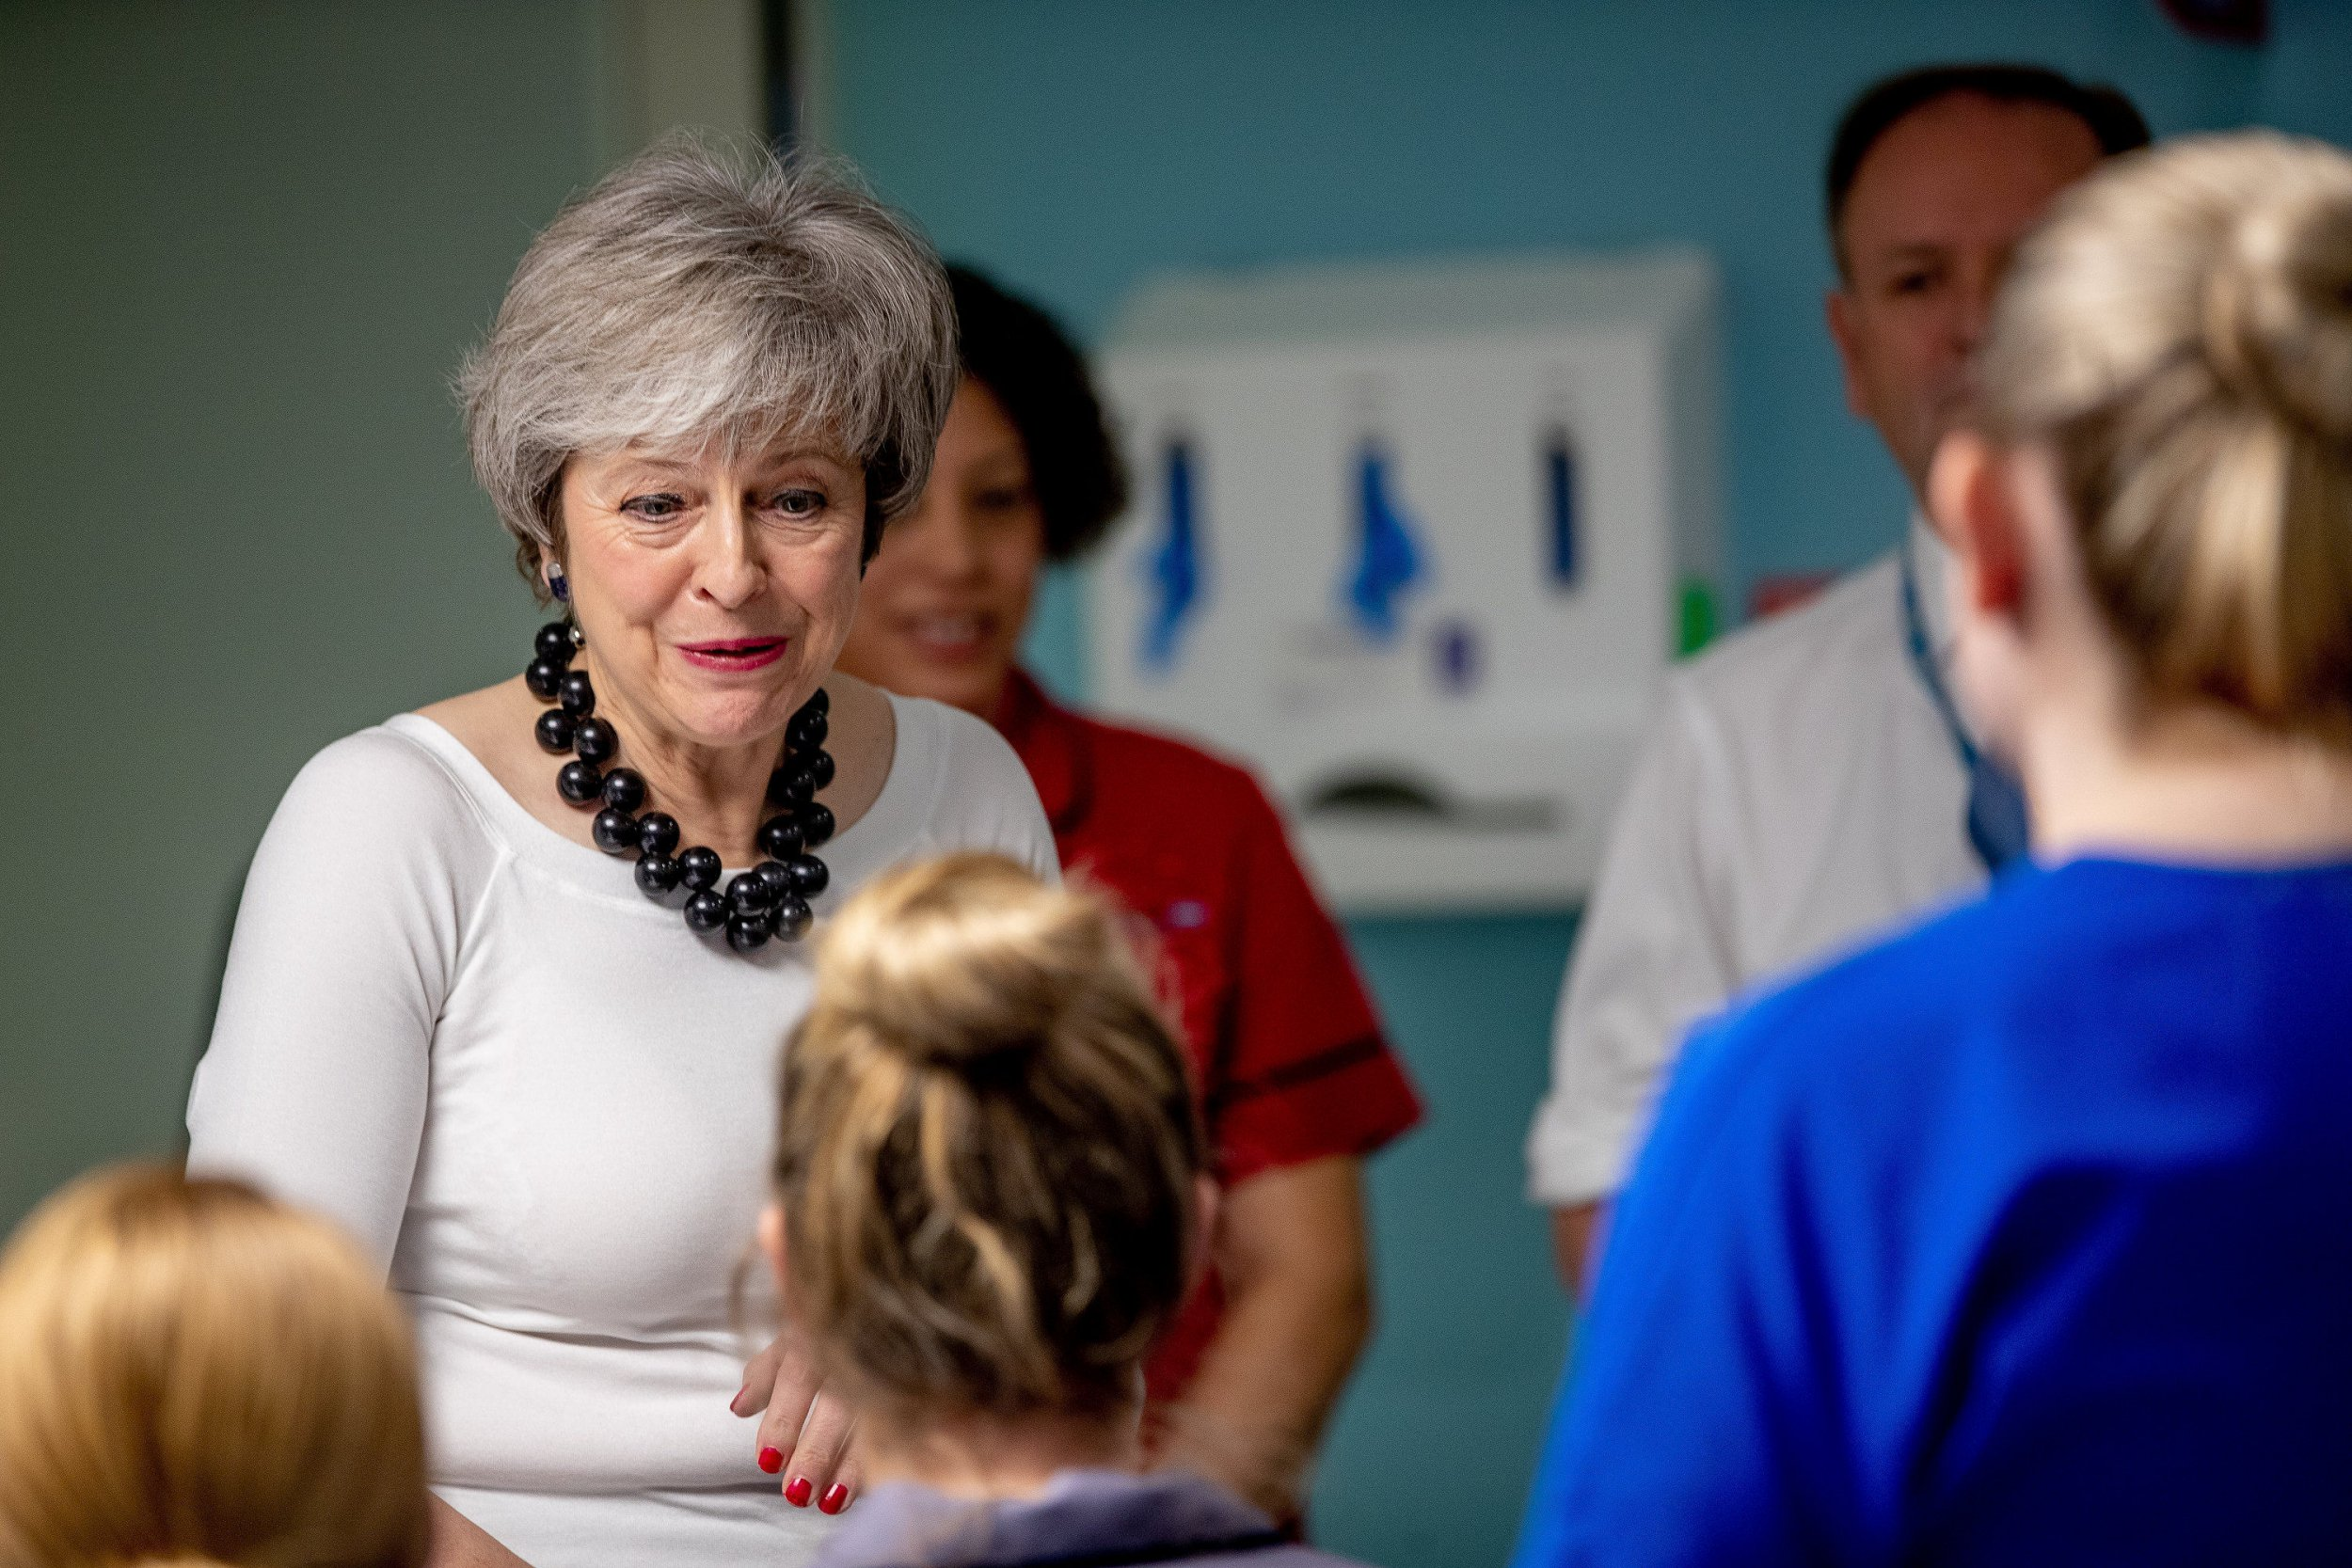 Prime Minister Theresa May visiting the wards at Alder Hey Children's Hospital, Liverpool where they launched the NHS Long Term Plan. PRESS ASSOCIATION Photo. Picture date: Monday January 7, 2019. See PA story POLITICS Plan. Photo credit should read: Charlotte Graham/Daily Telegraph/PA Wire